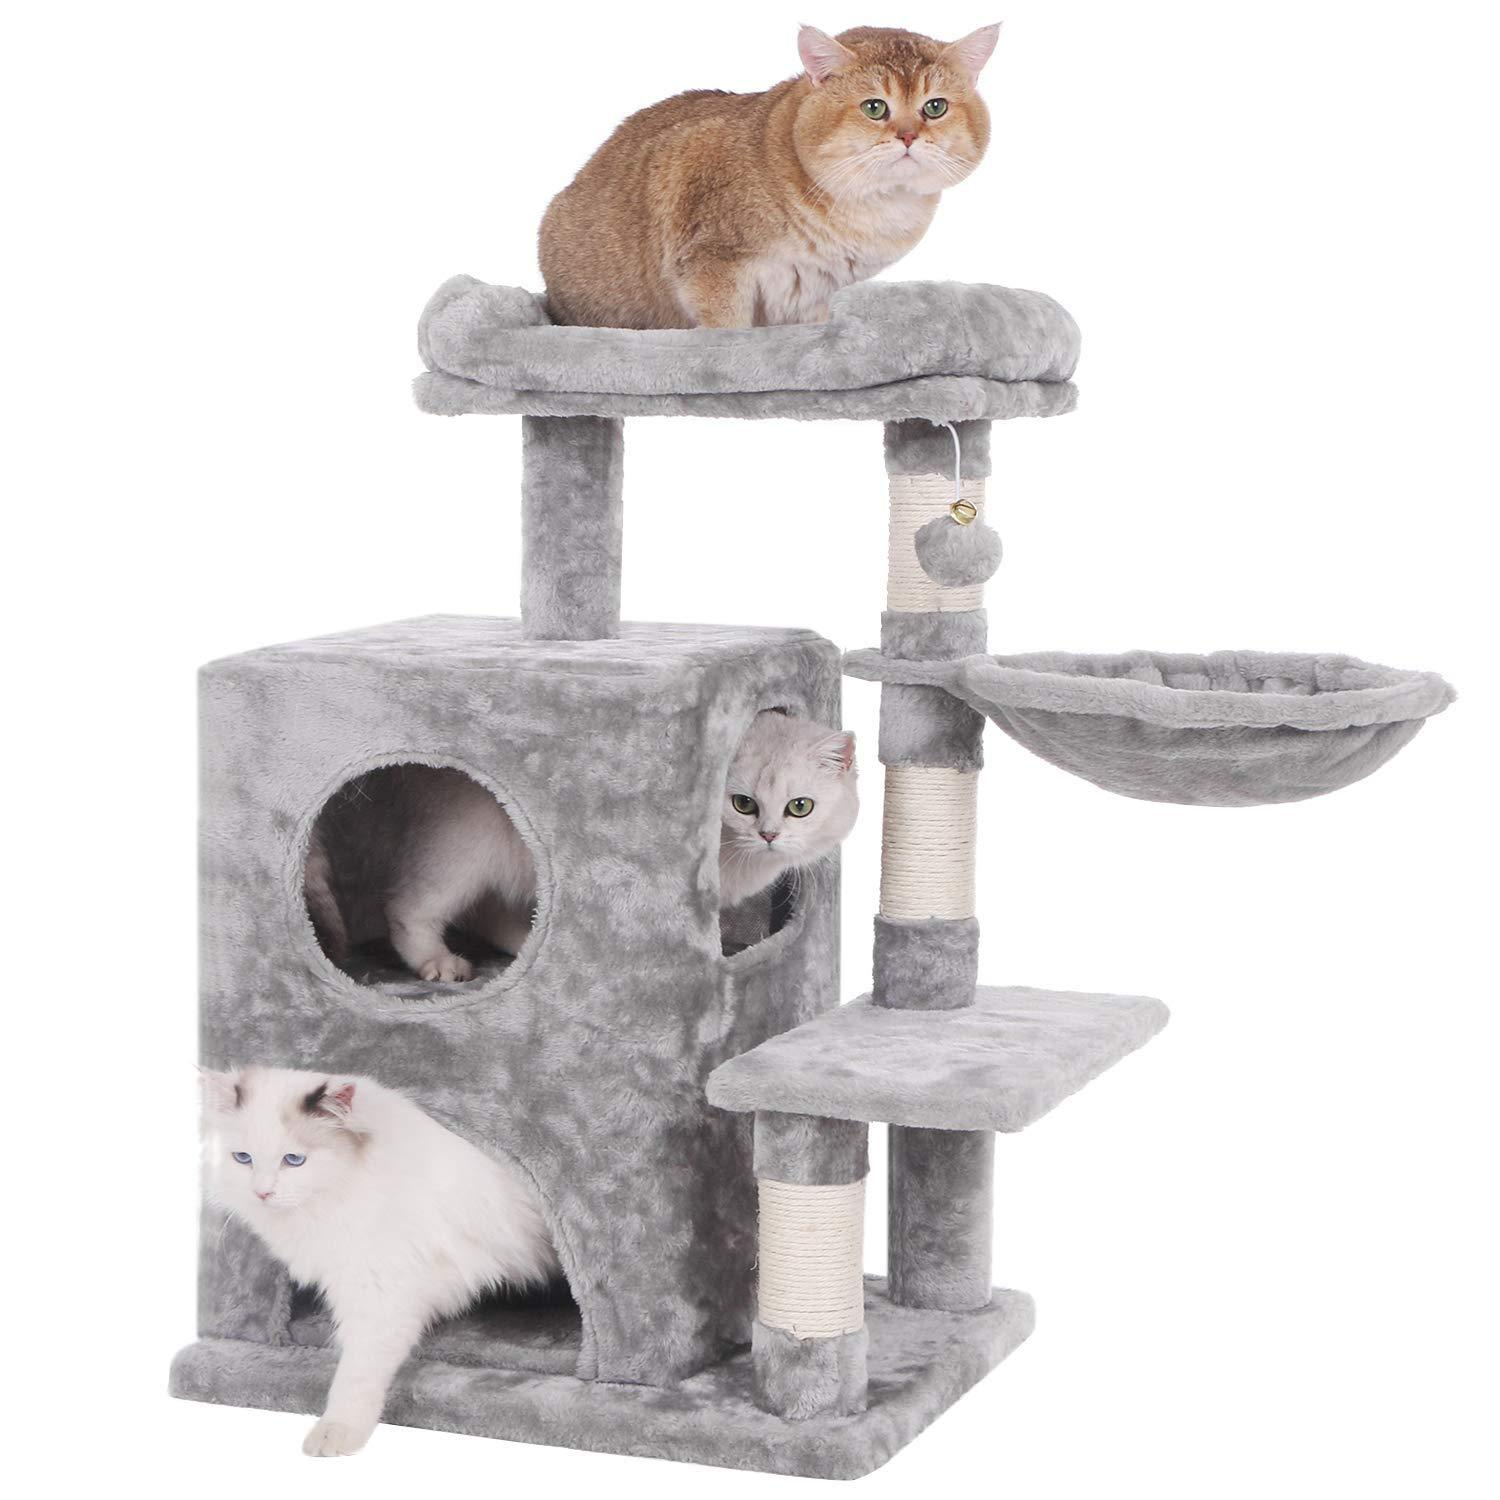 2021 Jarl Home 31 89 Modern Cat Tree Condo With Sisal Scratching Posts Light Grey Cat Tower With Plush Perch Cats Furniture Play House From Jarlhome 57 28 Dhgate Com